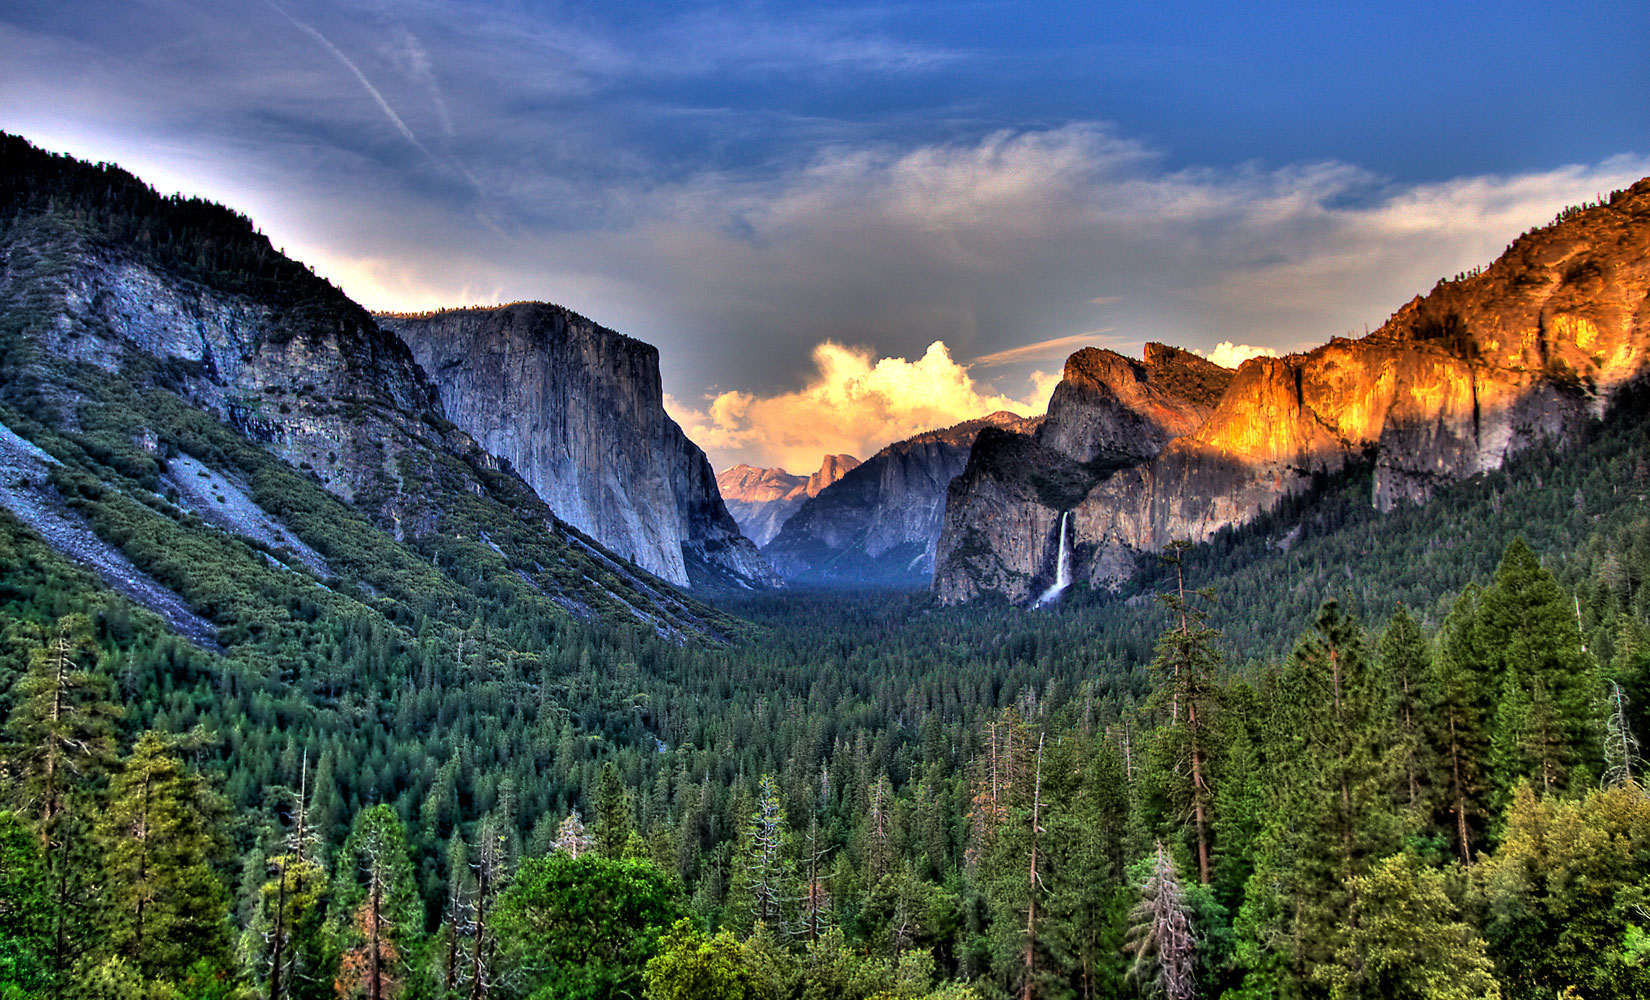 yosemite pictures 31468 1650x1000 px